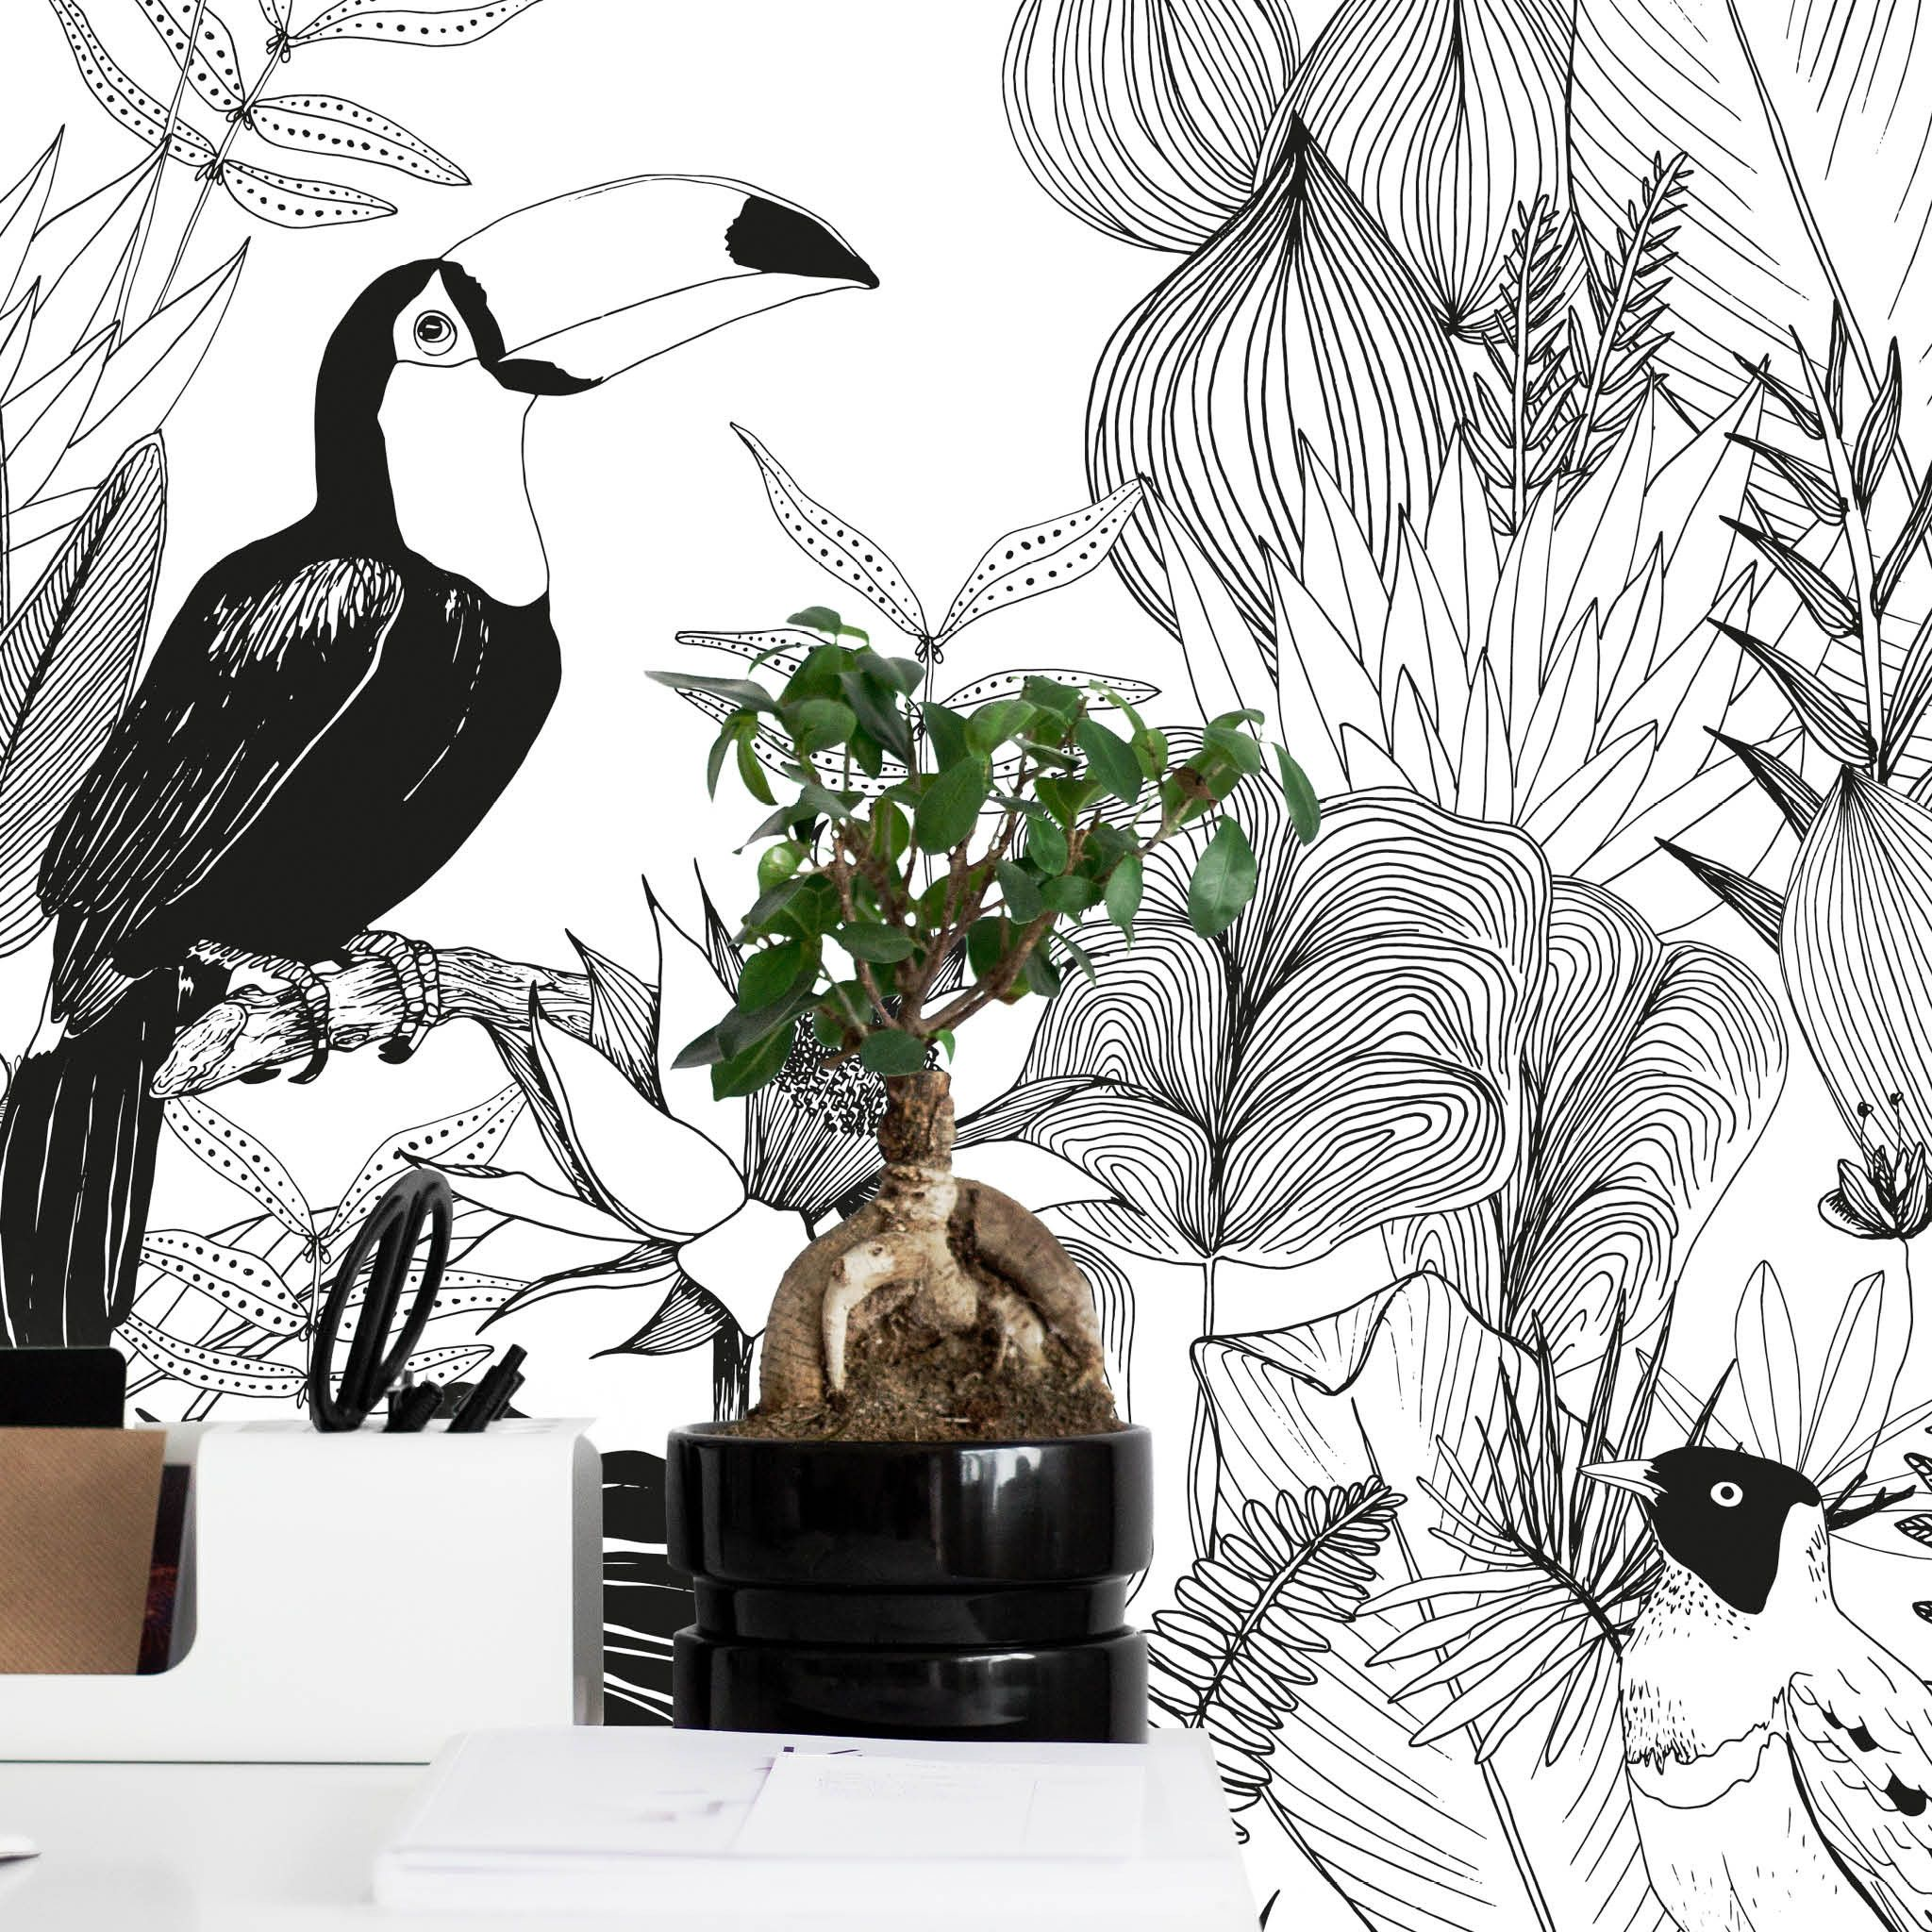 papier peint magn tique jungle un univers sauvage au feuillage dense en noir et blanc pour une. Black Bedroom Furniture Sets. Home Design Ideas